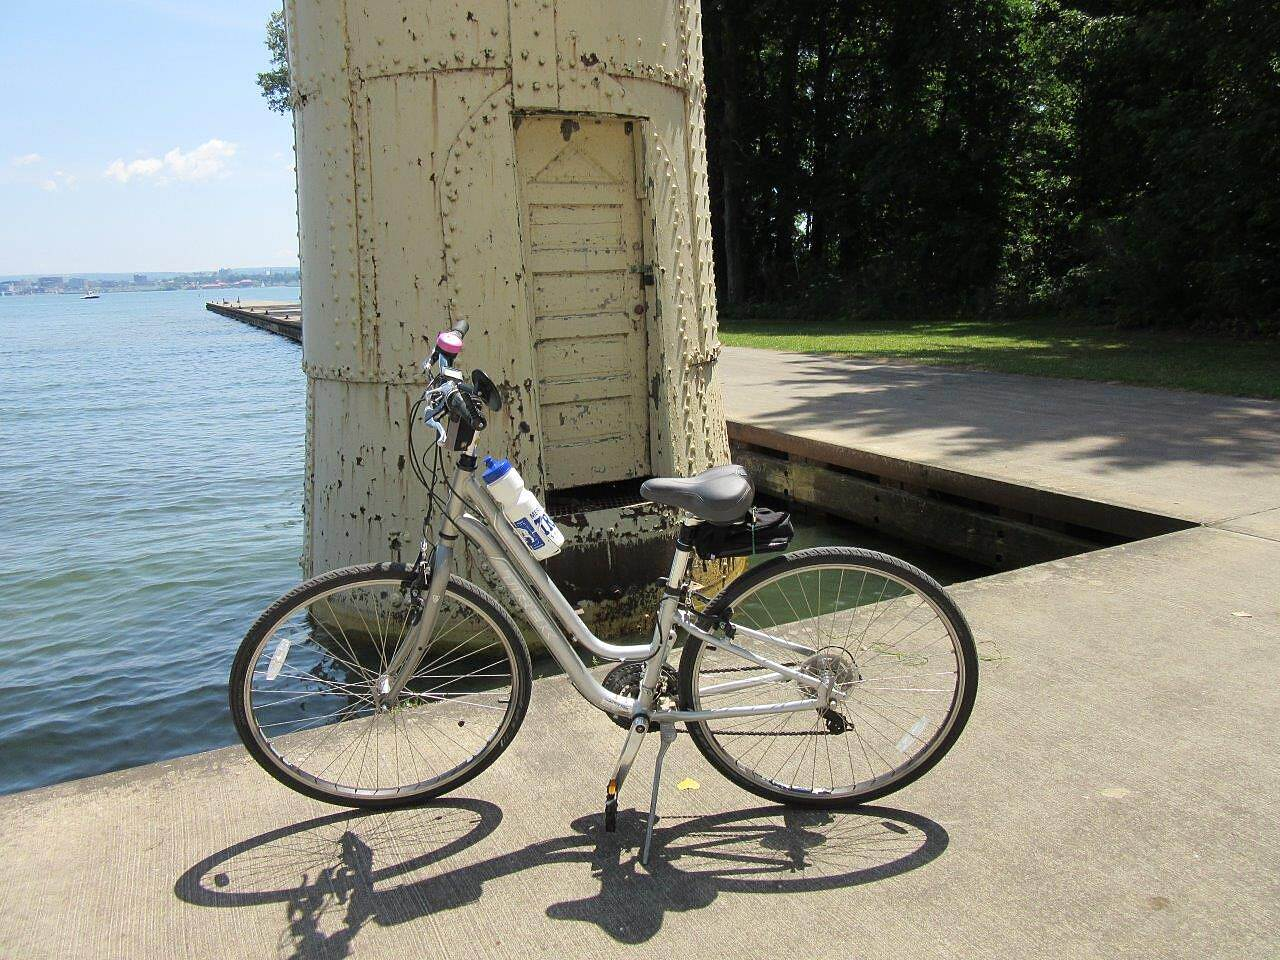 Karl Boyes Multi-purpose Trail Small Lighthouse This is near the 'waterworks' and it's an old lighthouse. Also near the lighthouse is the bike rental place.